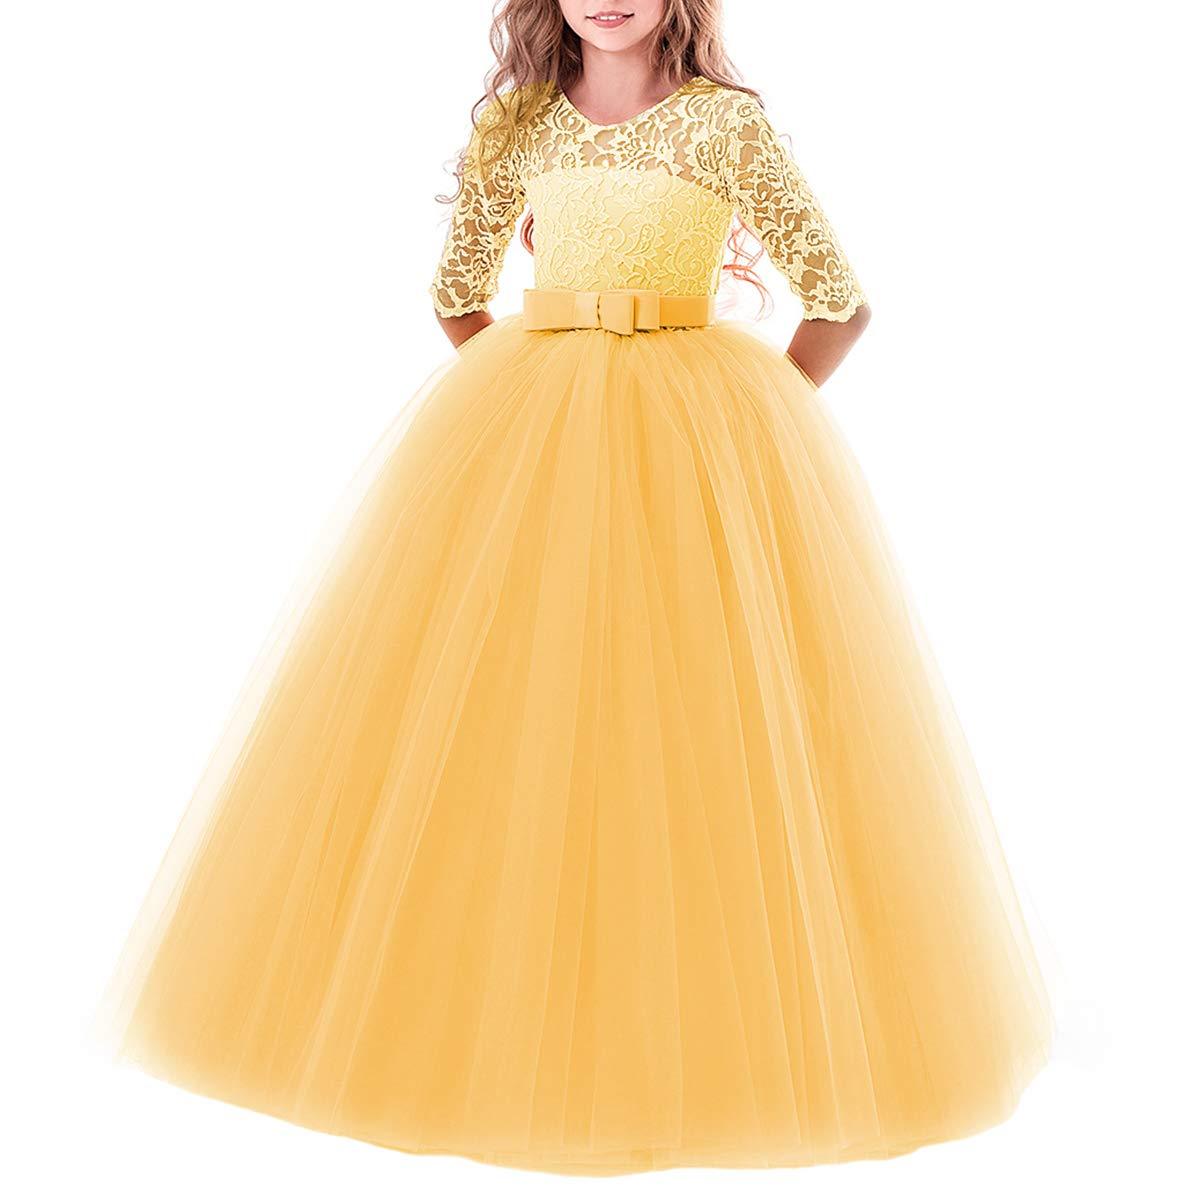 5d363c3161f87 Girls Flower Floral Lace 3/4 Sleeves Floor Long Princess Dress Wedding  Party Evening Formal Pegeant Maxi Gown